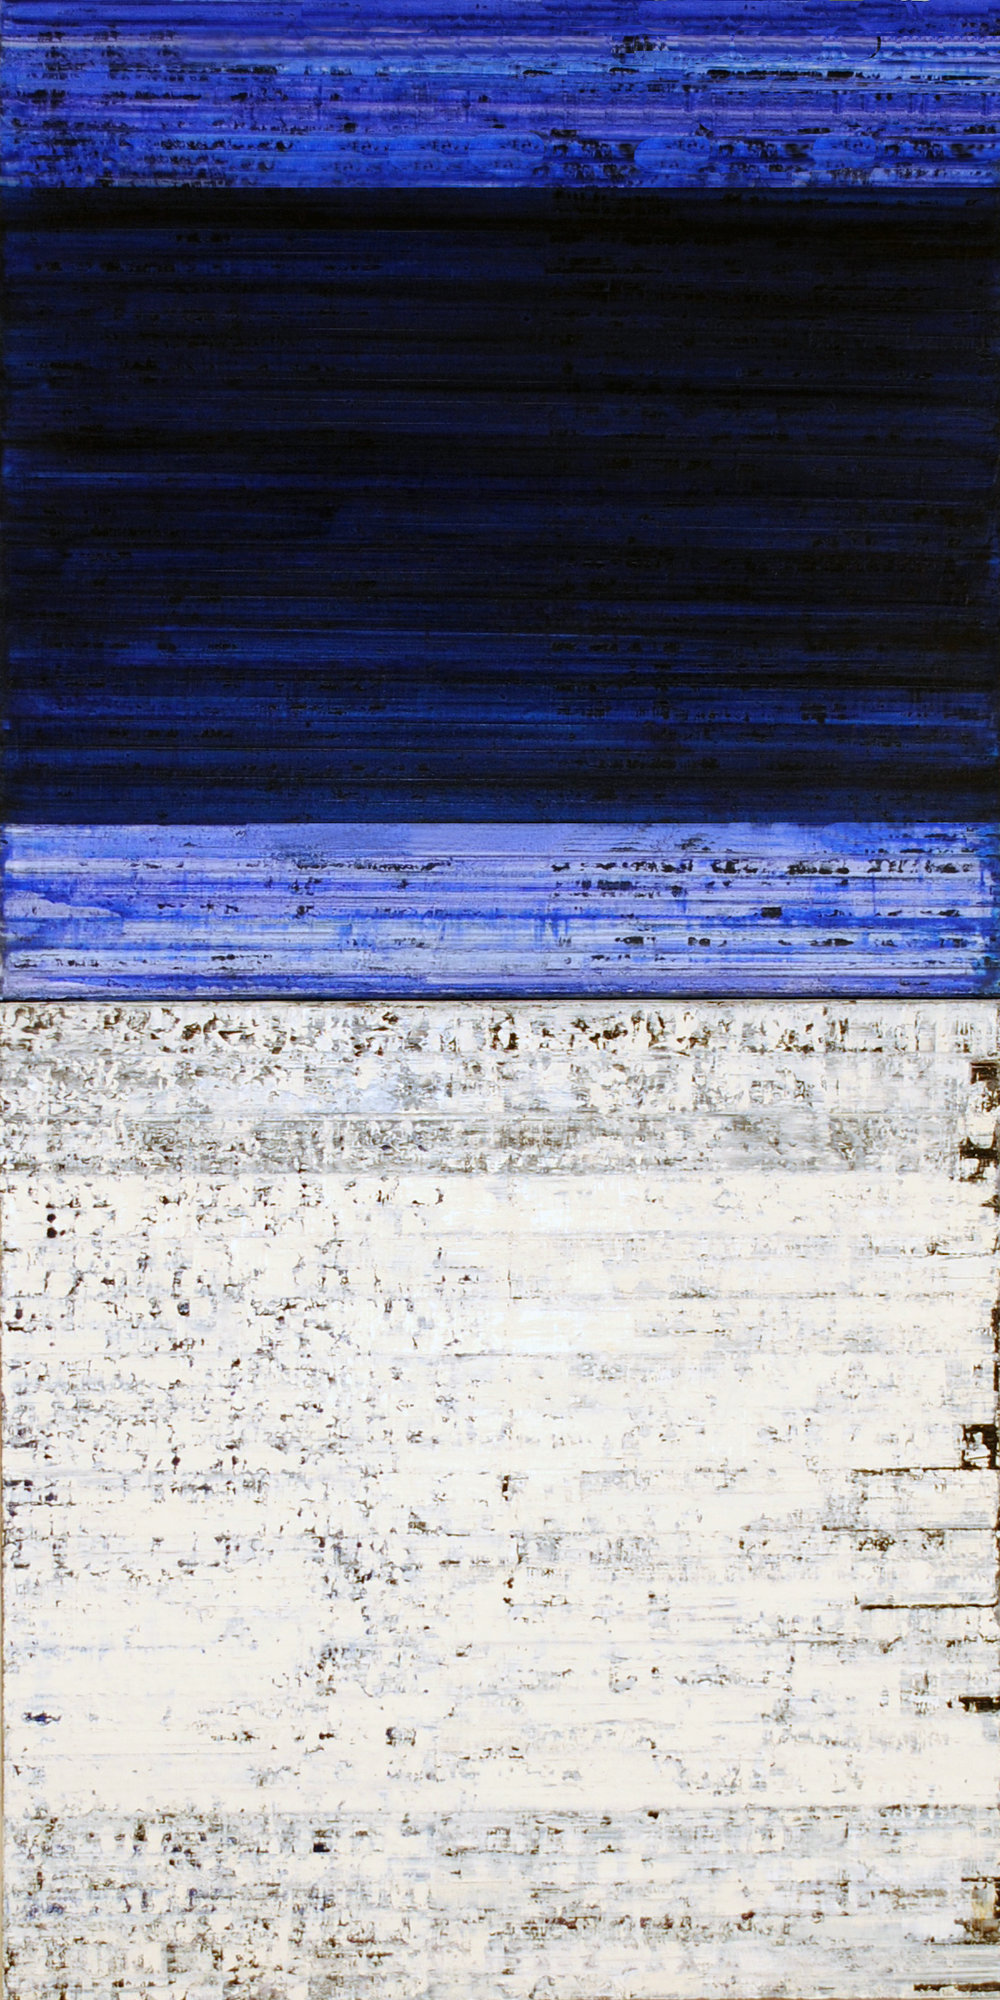 ISIS 19, 2010, Oil on canvas, 32 x 16 inches.